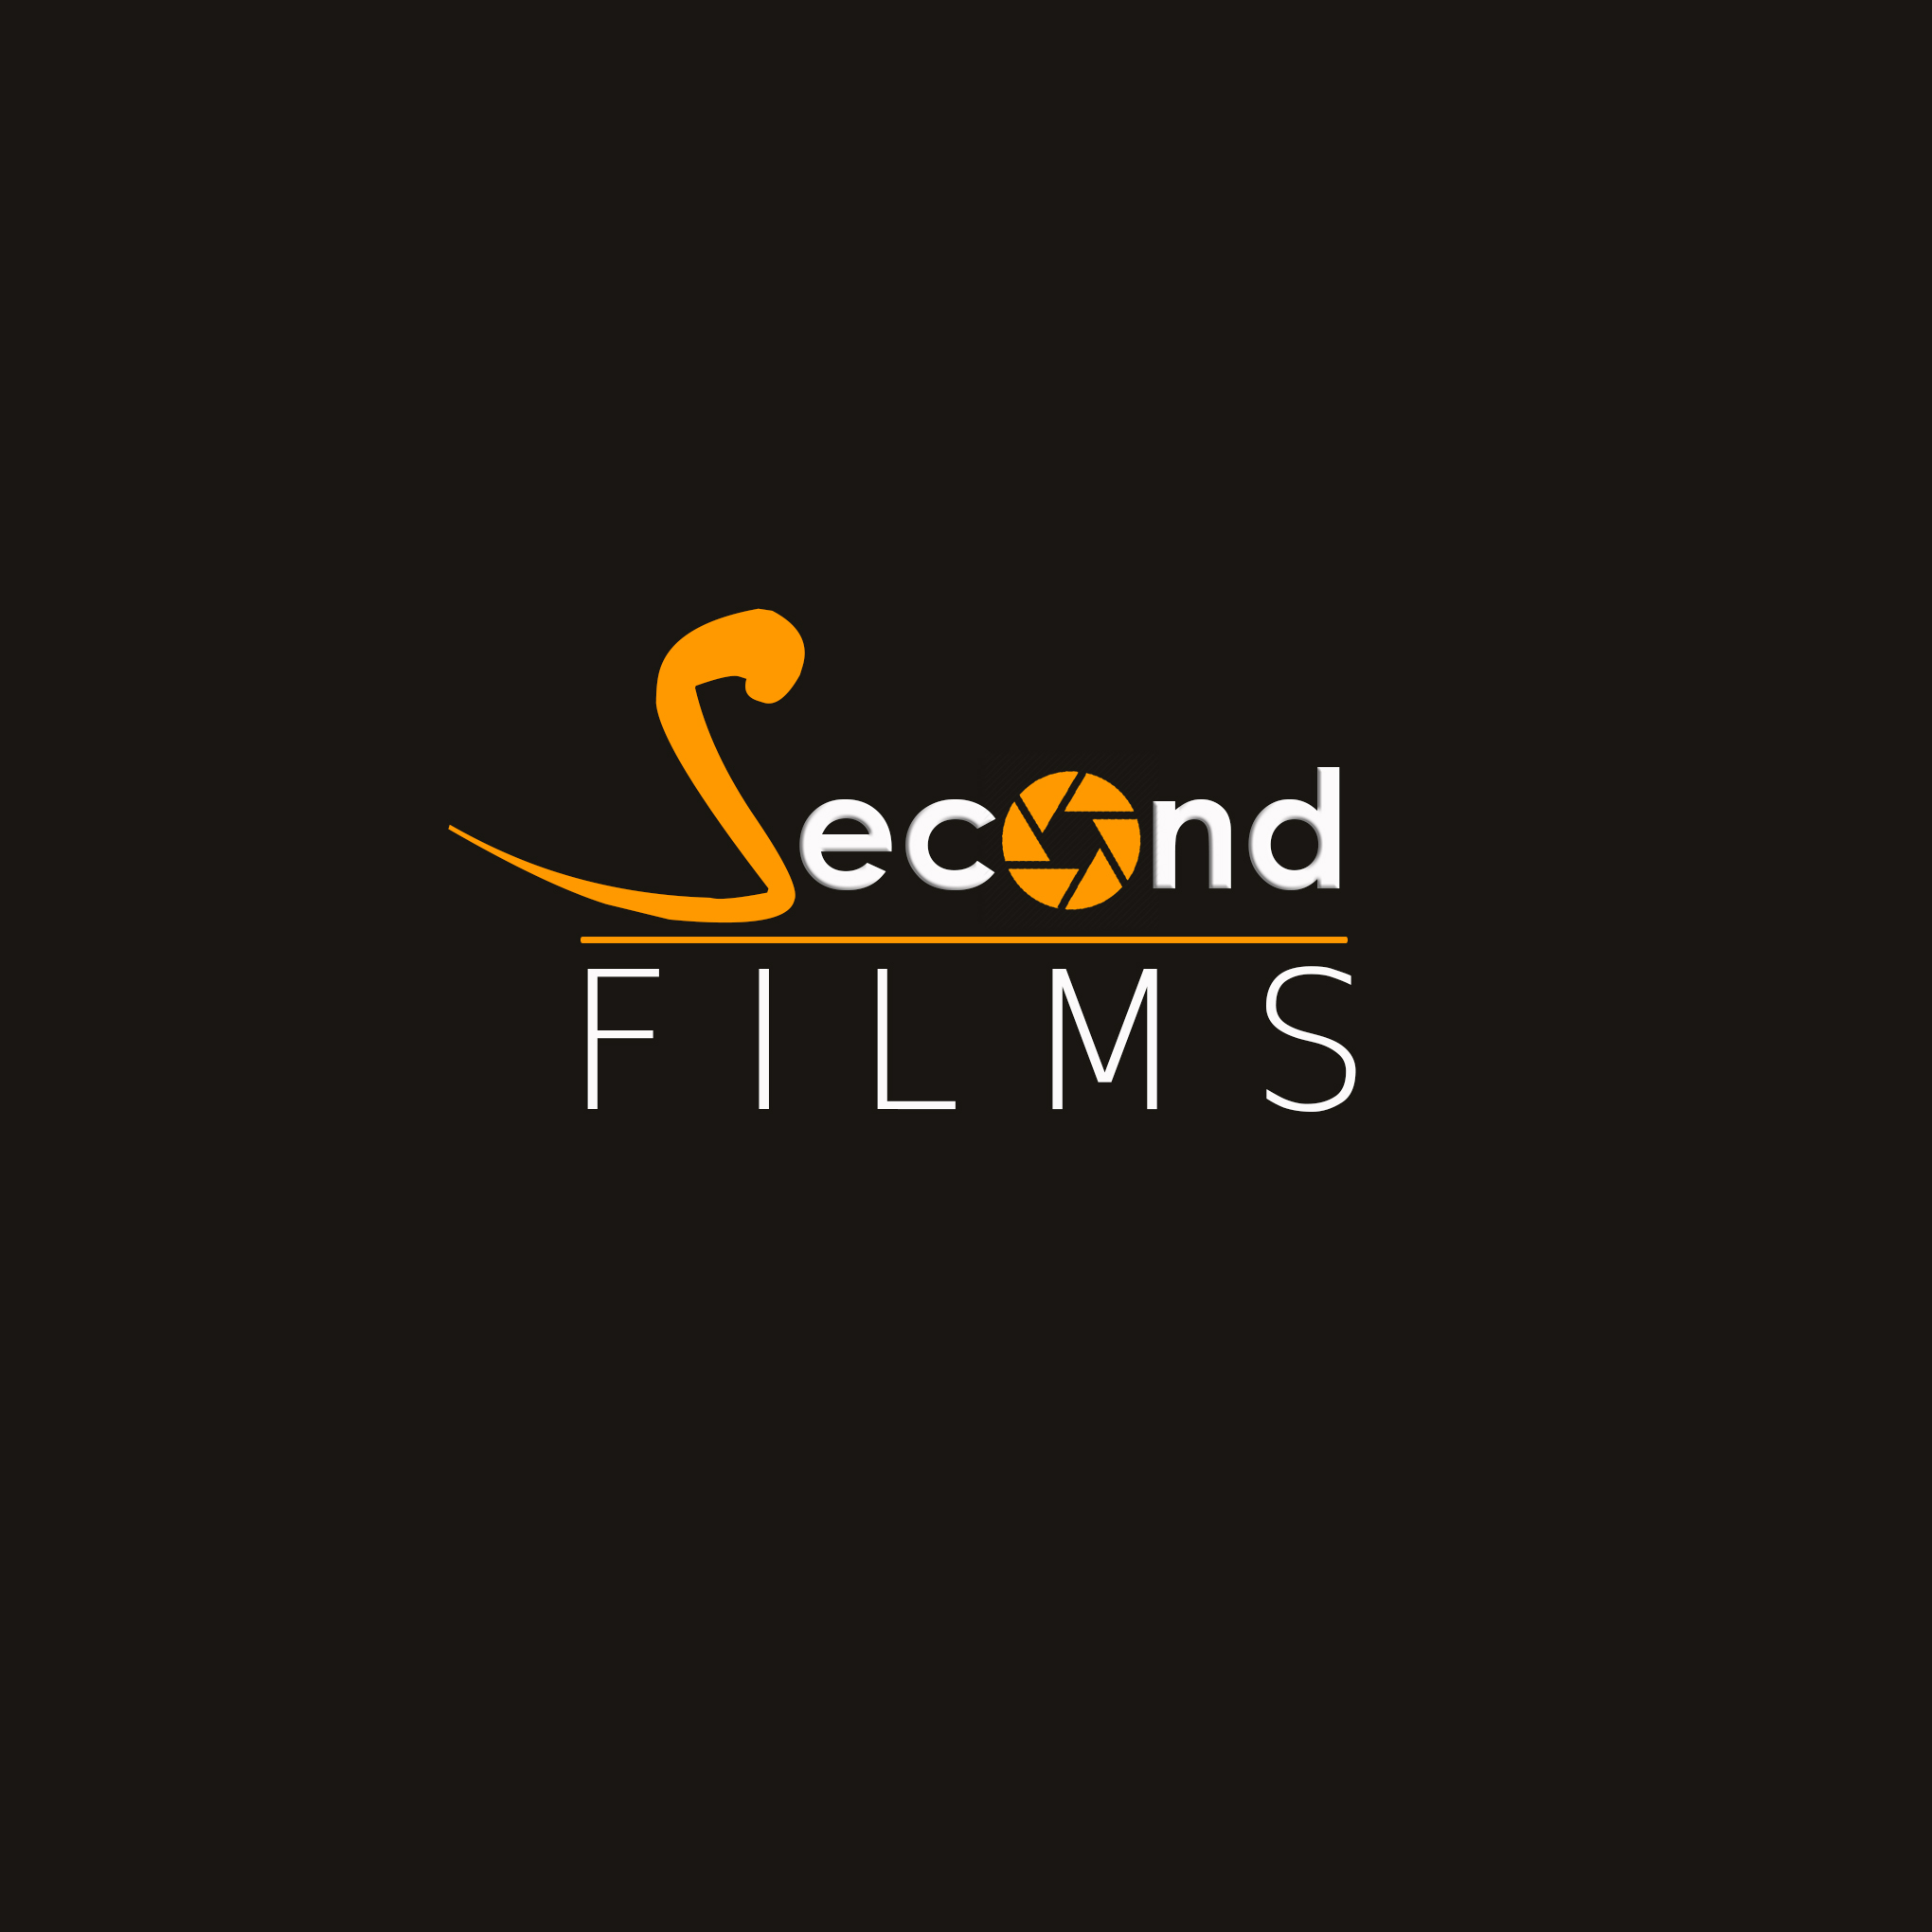 Second Films - logo design